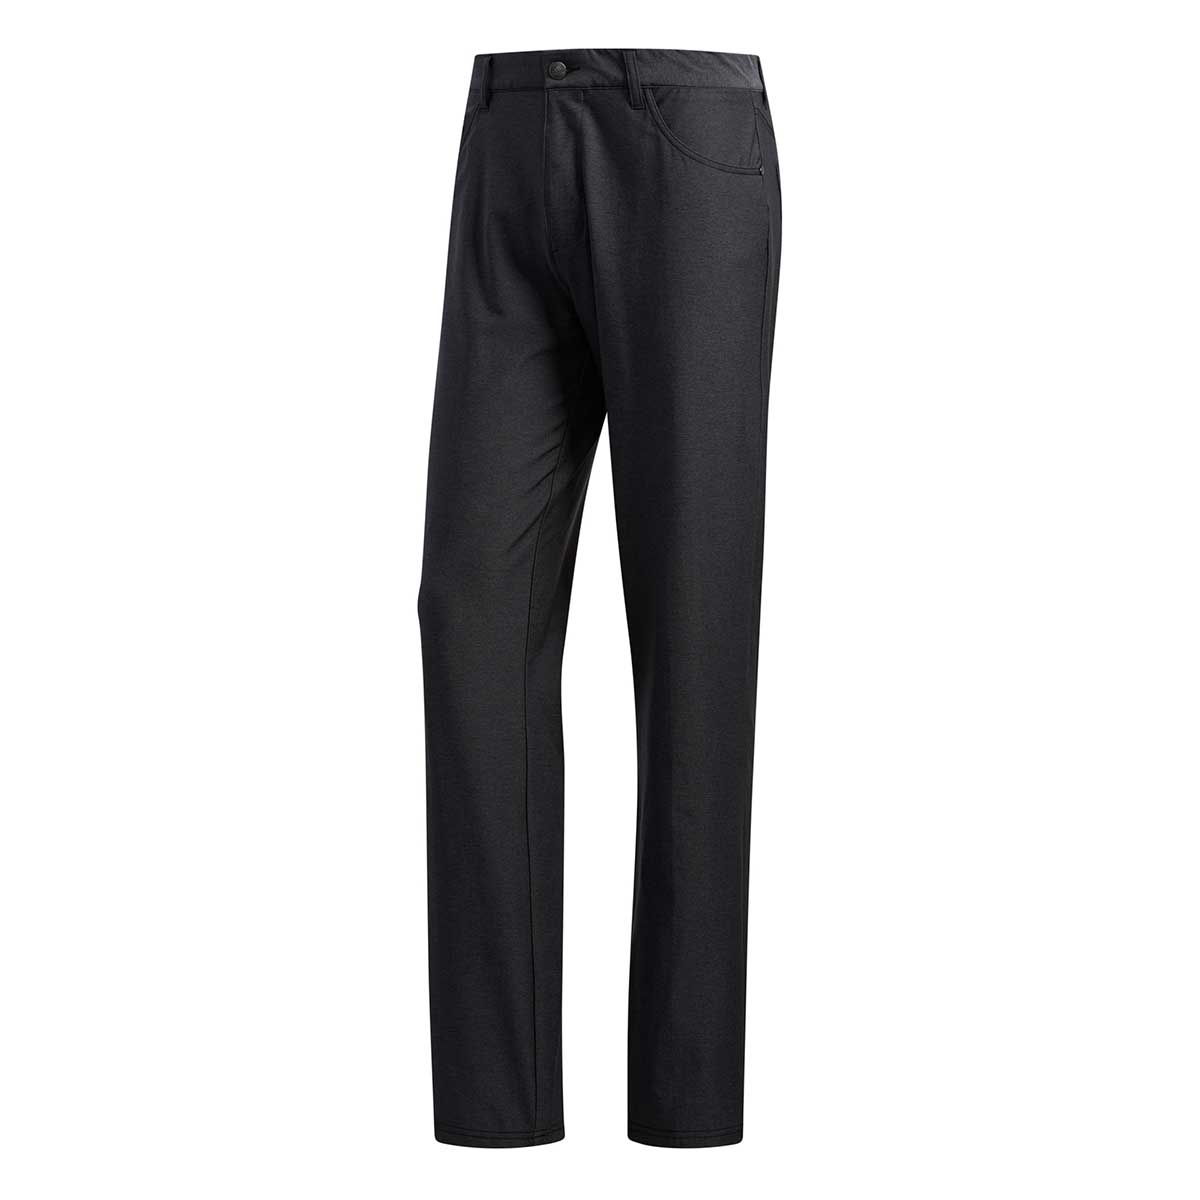 Adidas Men's Ultimate365 Heathered Five-Pocket Black Heather Pants